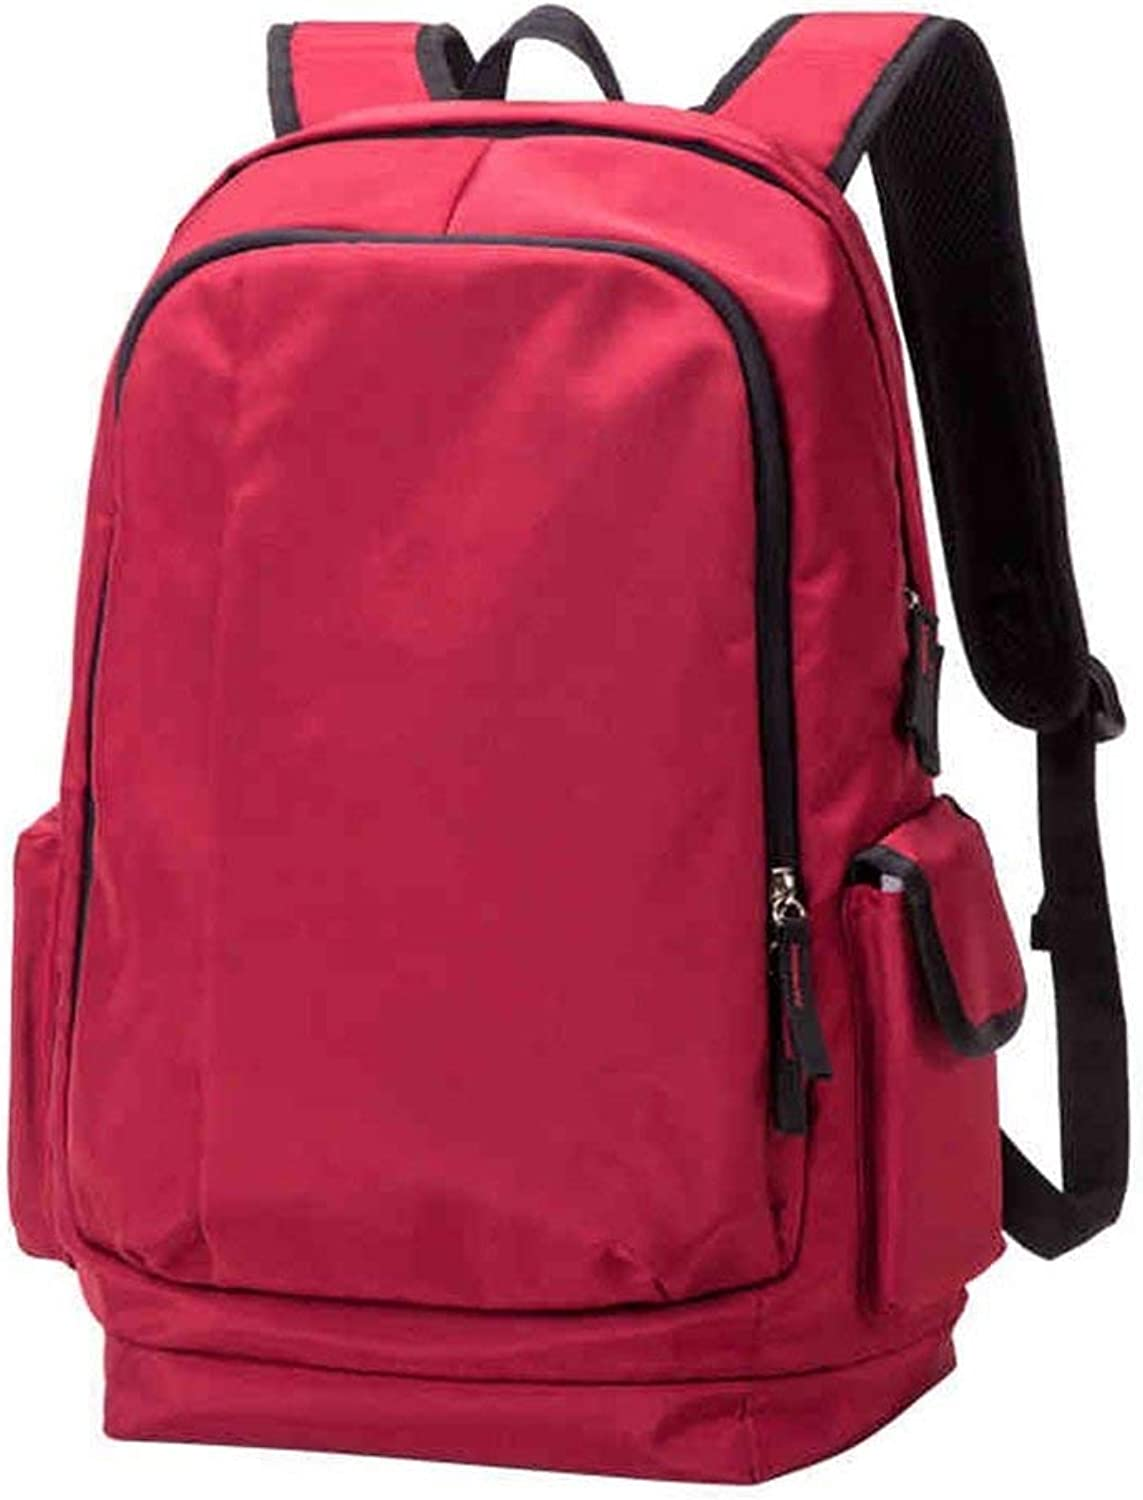 Campus Backpack Fashion Unisex Large Capacity Fashion Sports Travel Bag Casual Light Waterproof Walking Bag School Rucksack (color   Red)